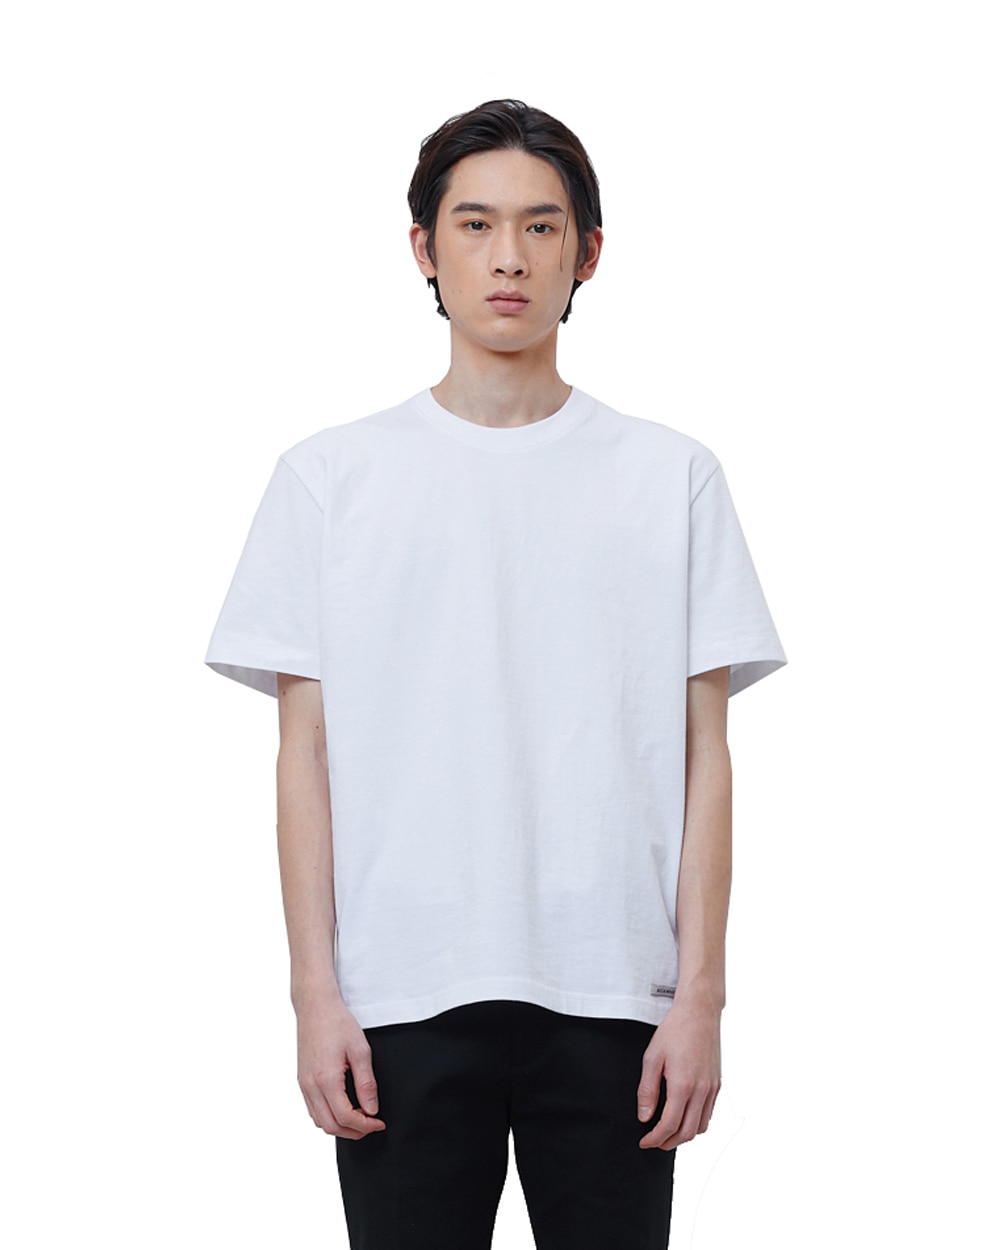 에이카화이트 FINEST COTTON HALF SLEEVE TEE (White)